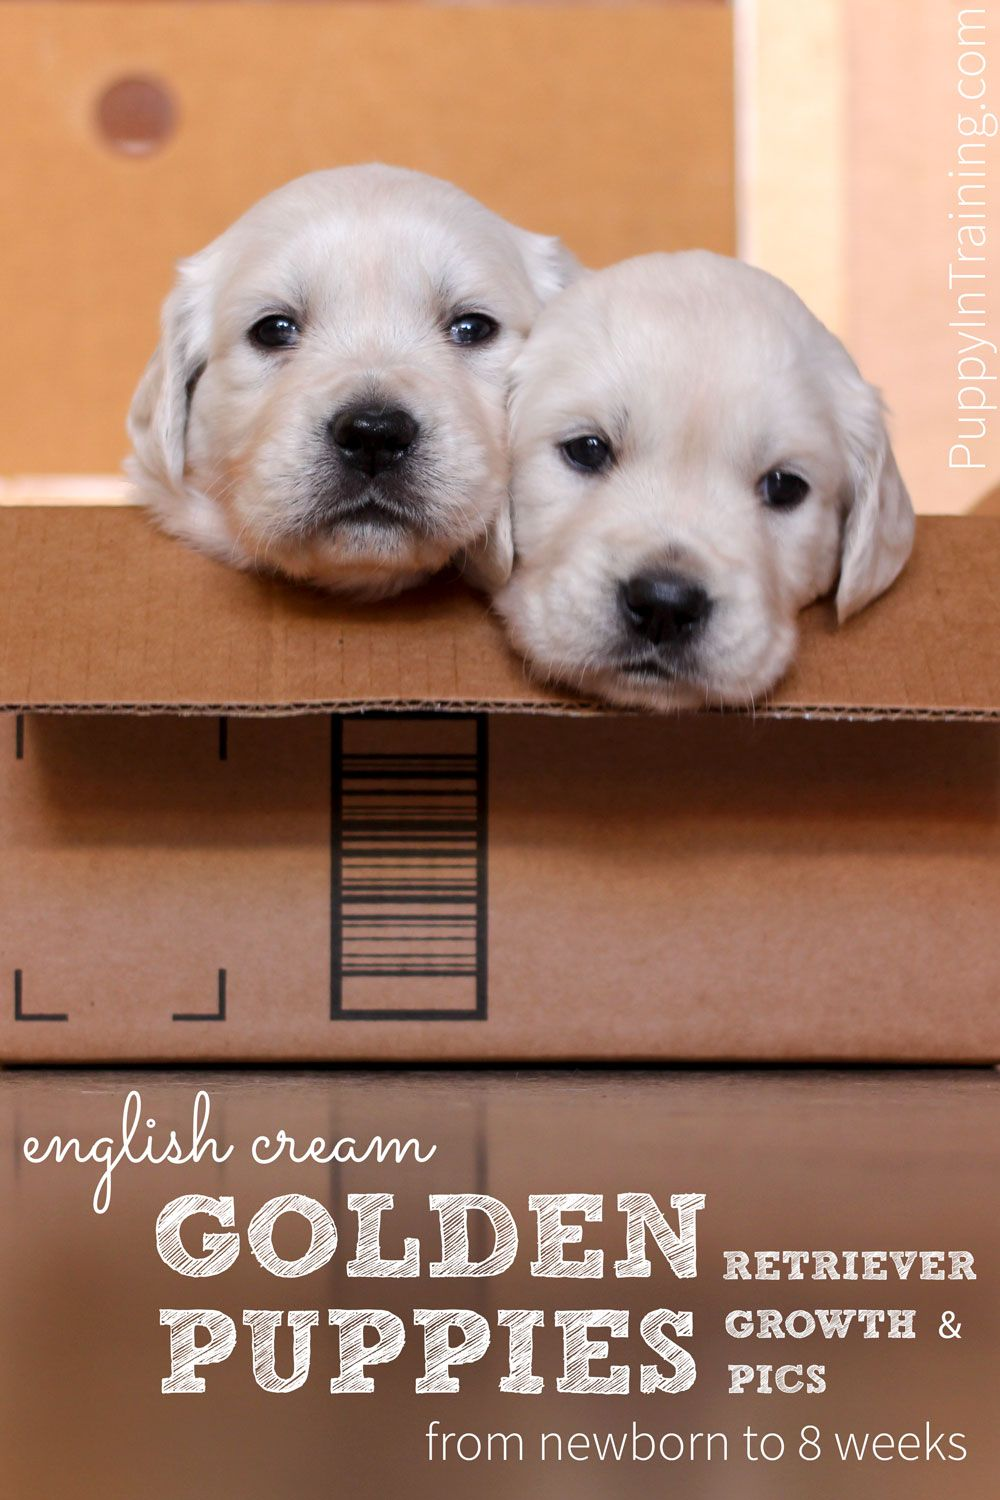 English Cream Golden Puppies Newborn To 8 Weeks Puppy In Training Golden Puppies Golden Retriever Retriever Puppy